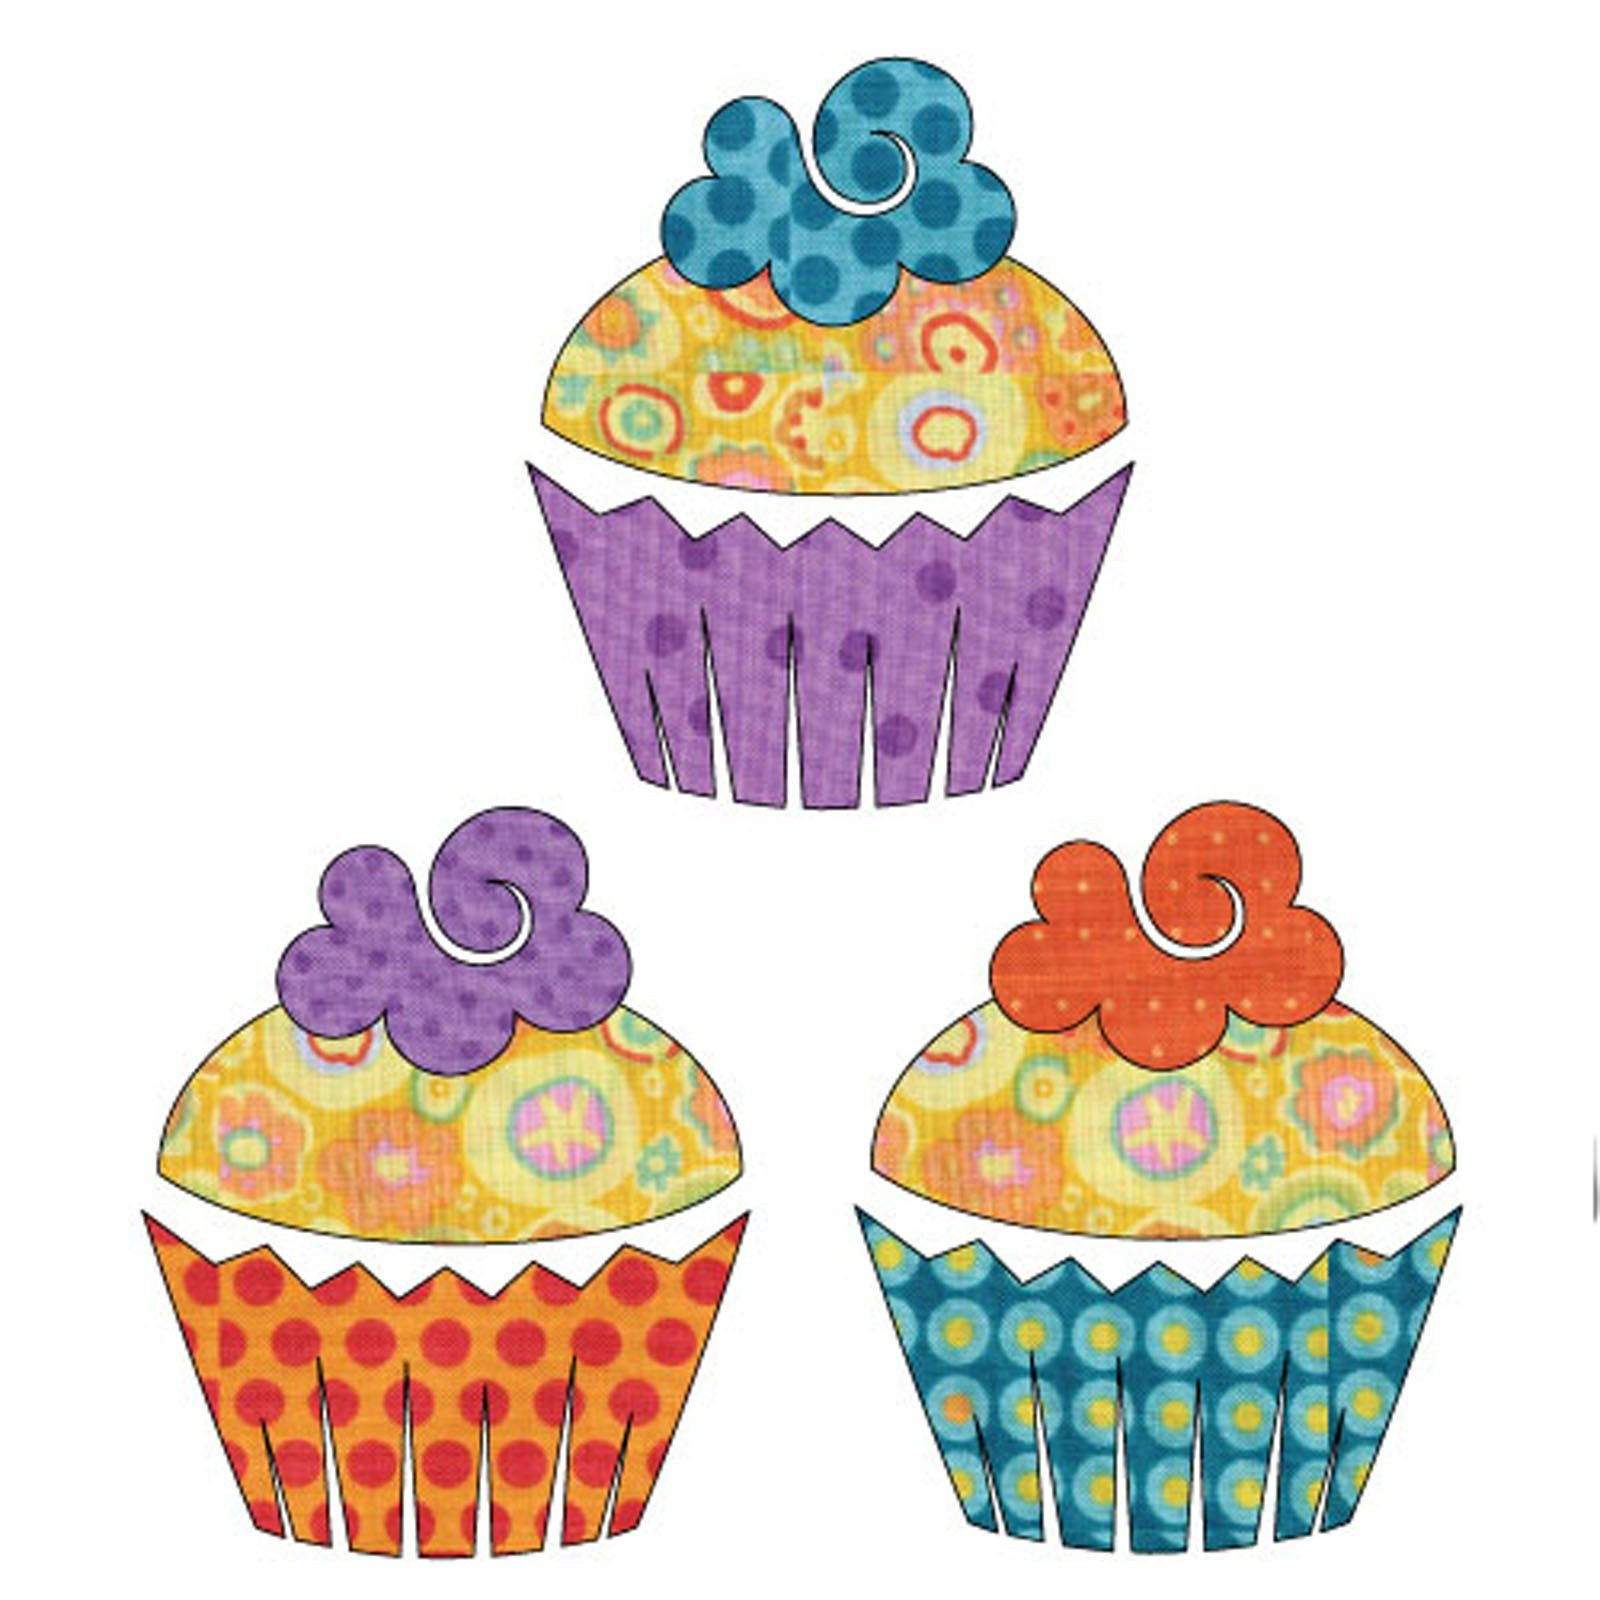 Sweet Treats - Cupcakes Set<br/>Applique Elementz 1106